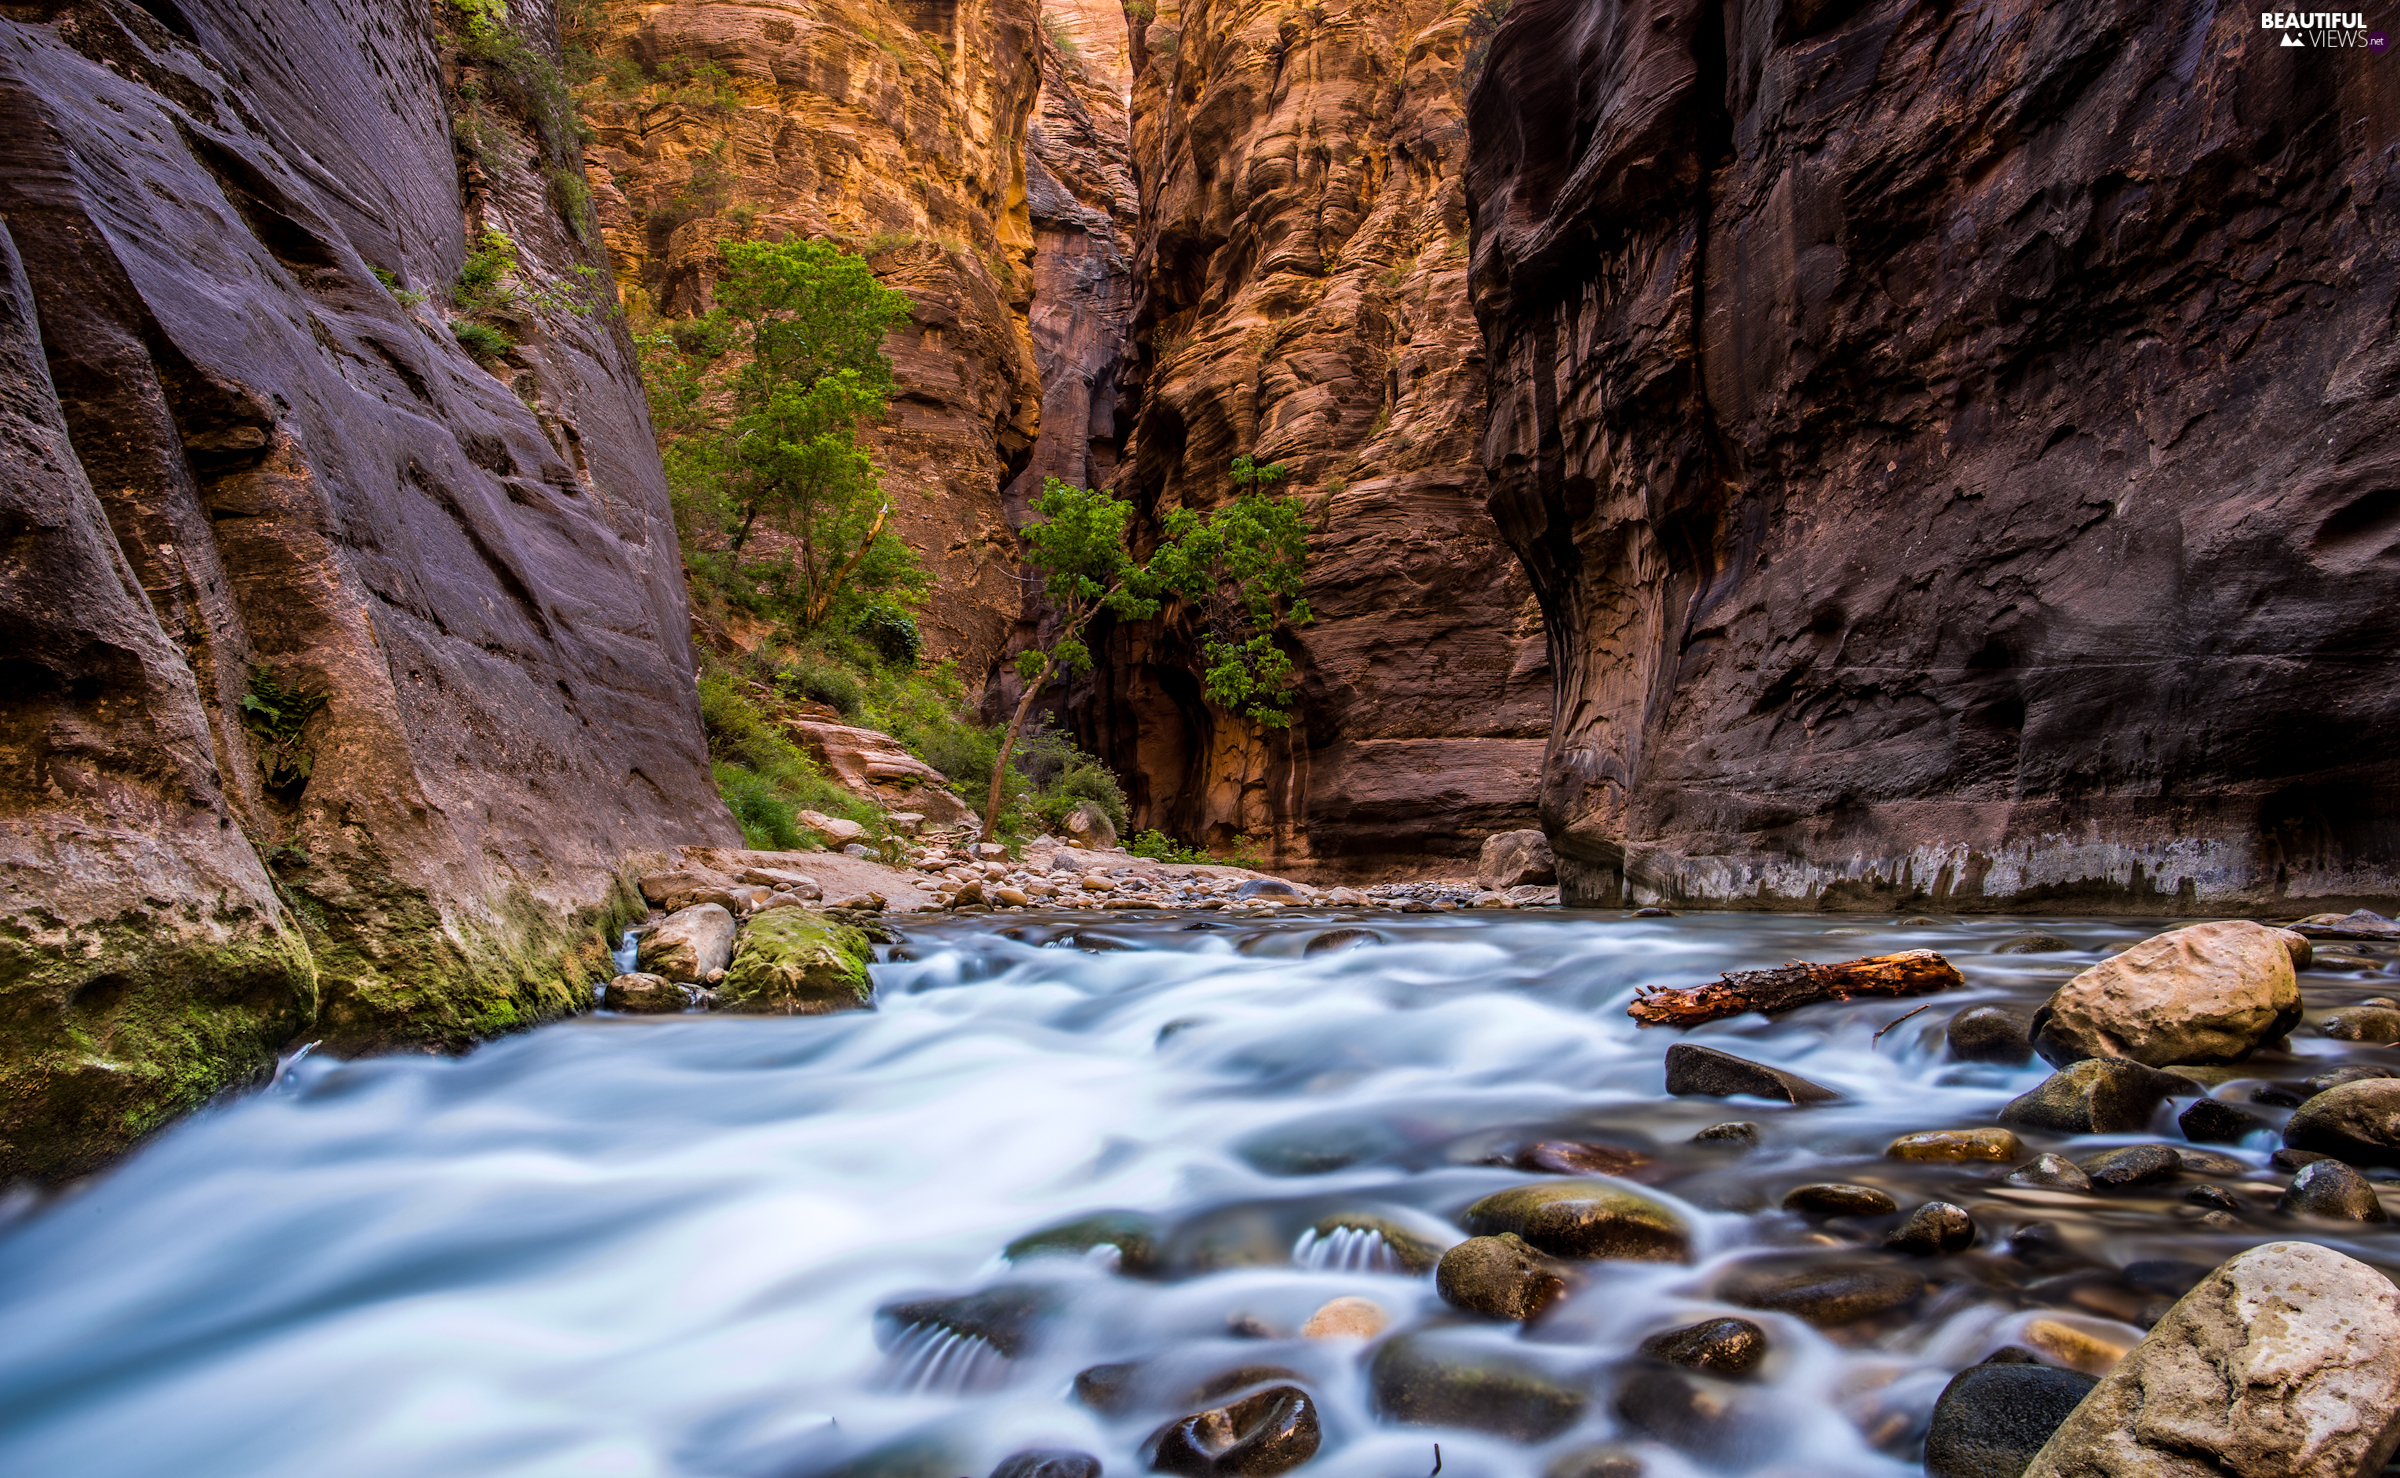 Zion National Park, The United States, rocks, Virgin River, Zion Narrows Canyon, Utah State